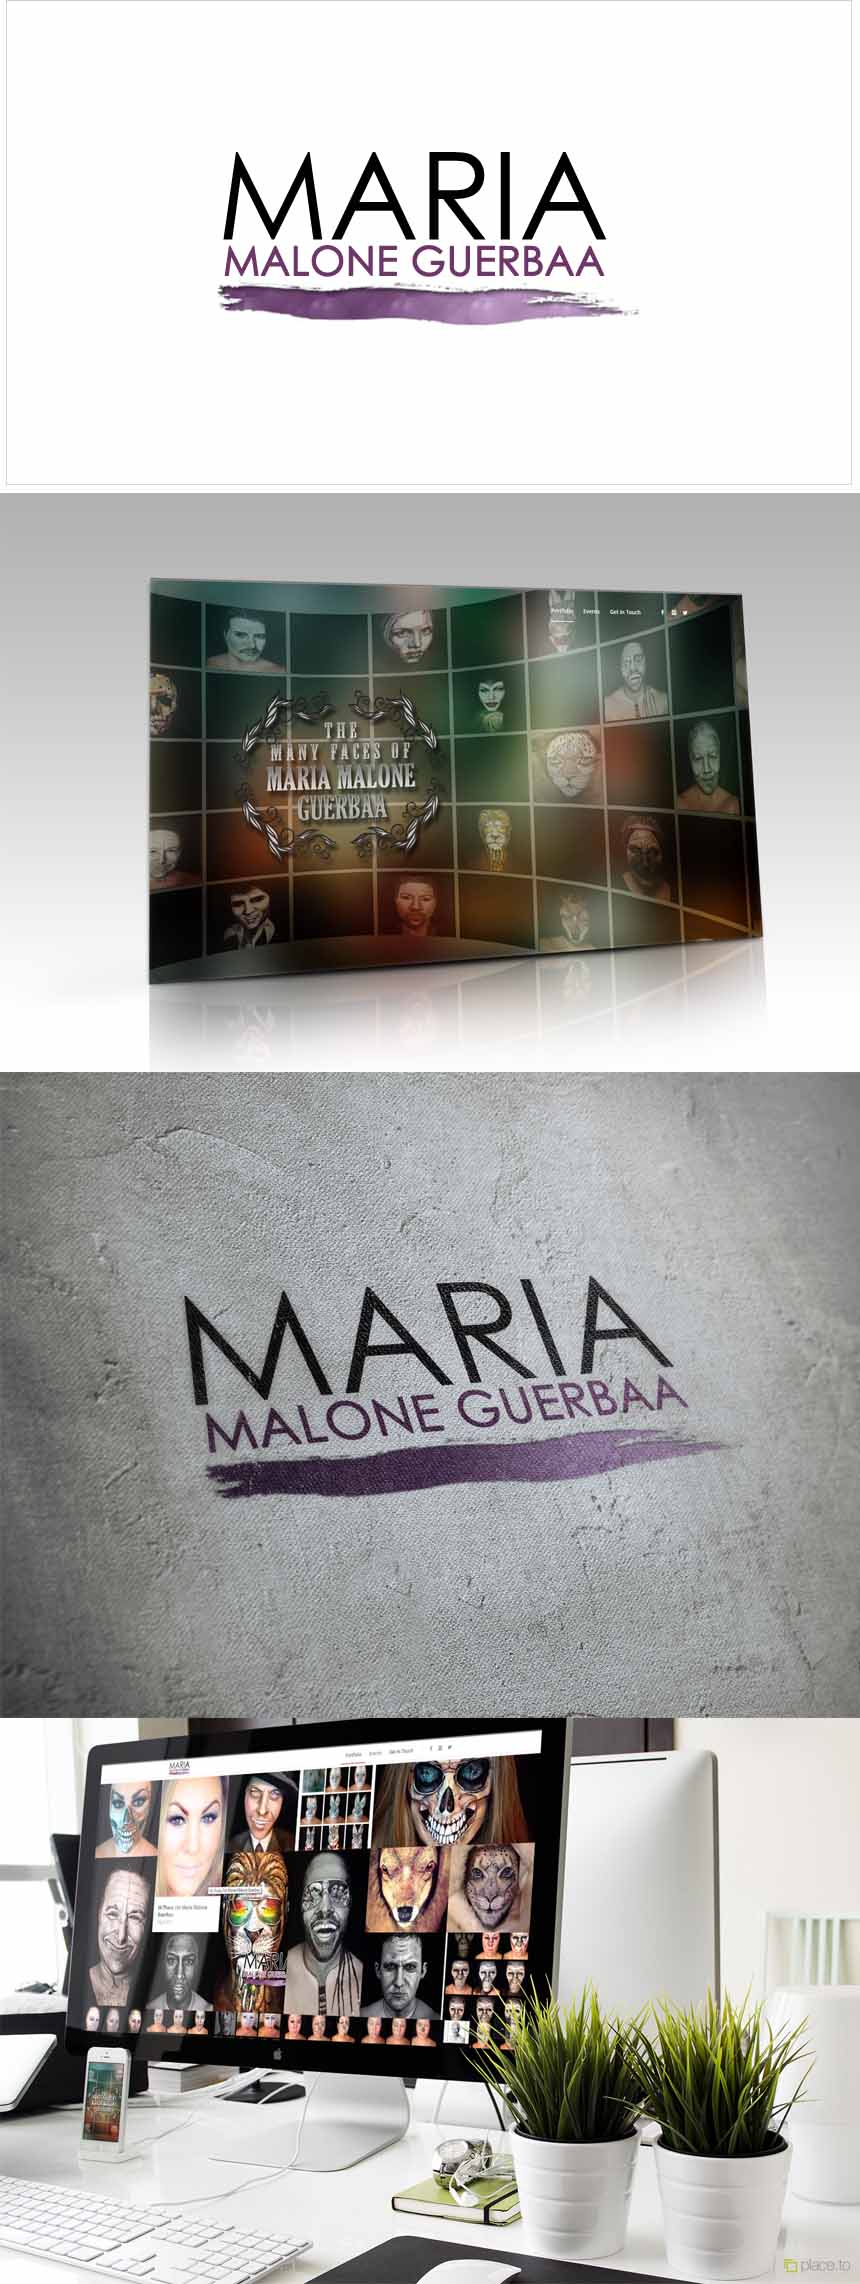 Maria Malone Guerbaa Web development project